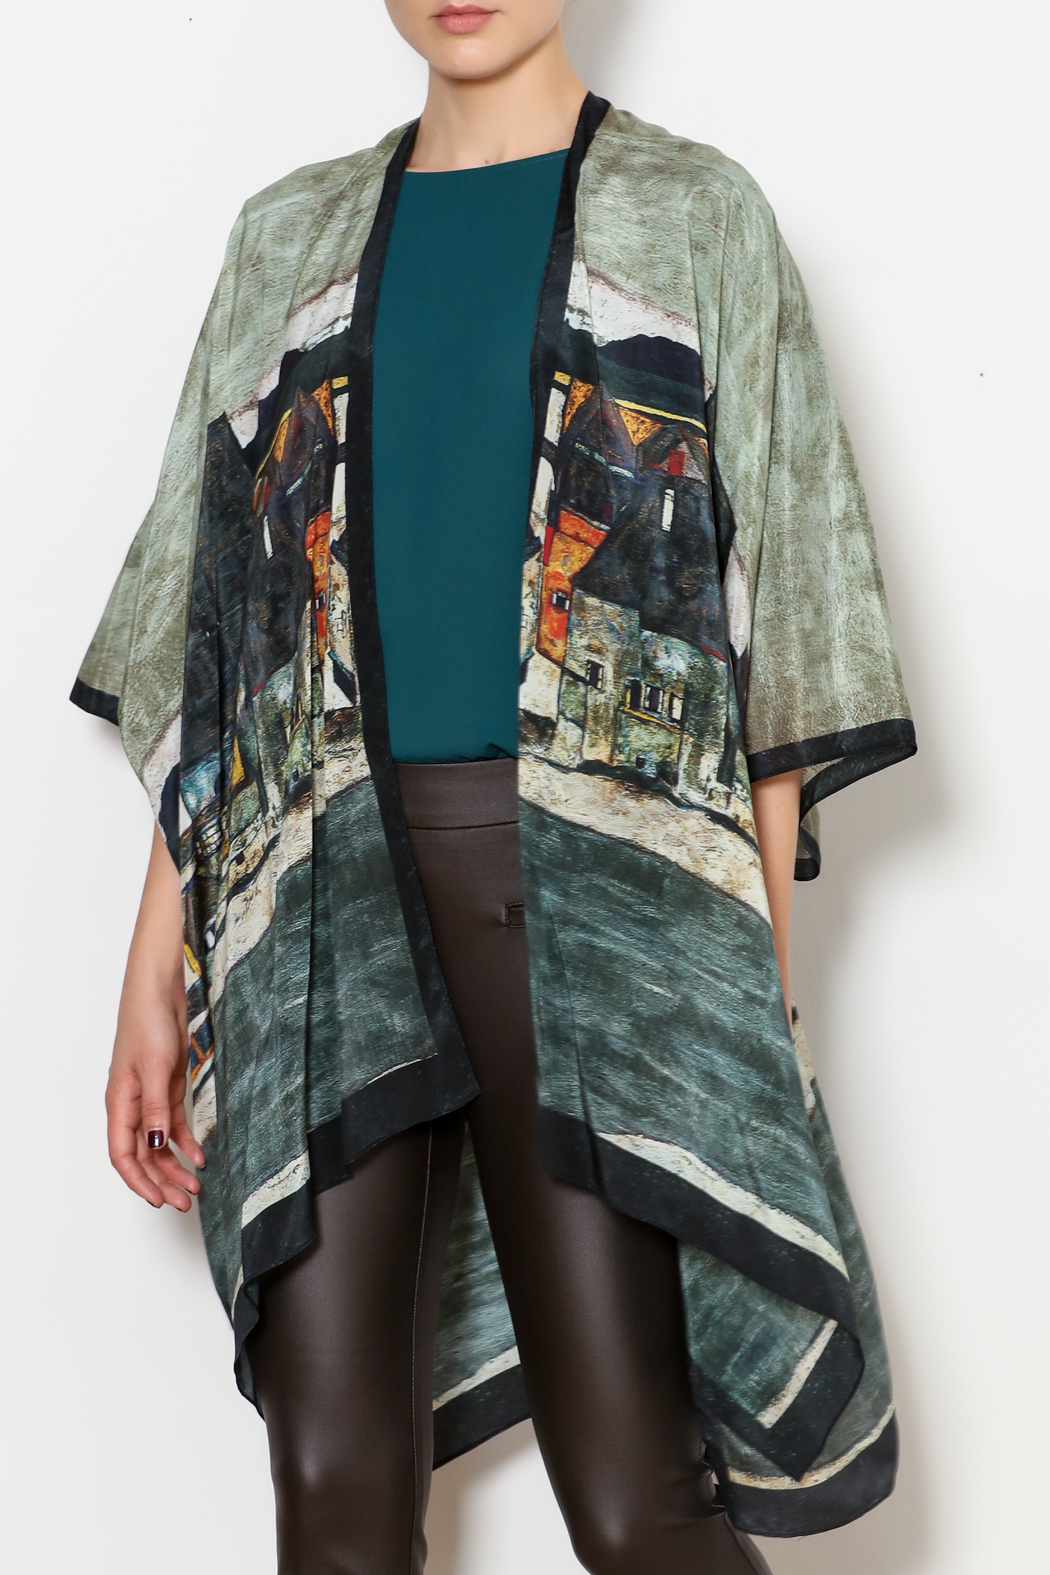 e6953863d Cocoon House Silk Kimono Jacket from Hudson Valley by Maria Luisa ...